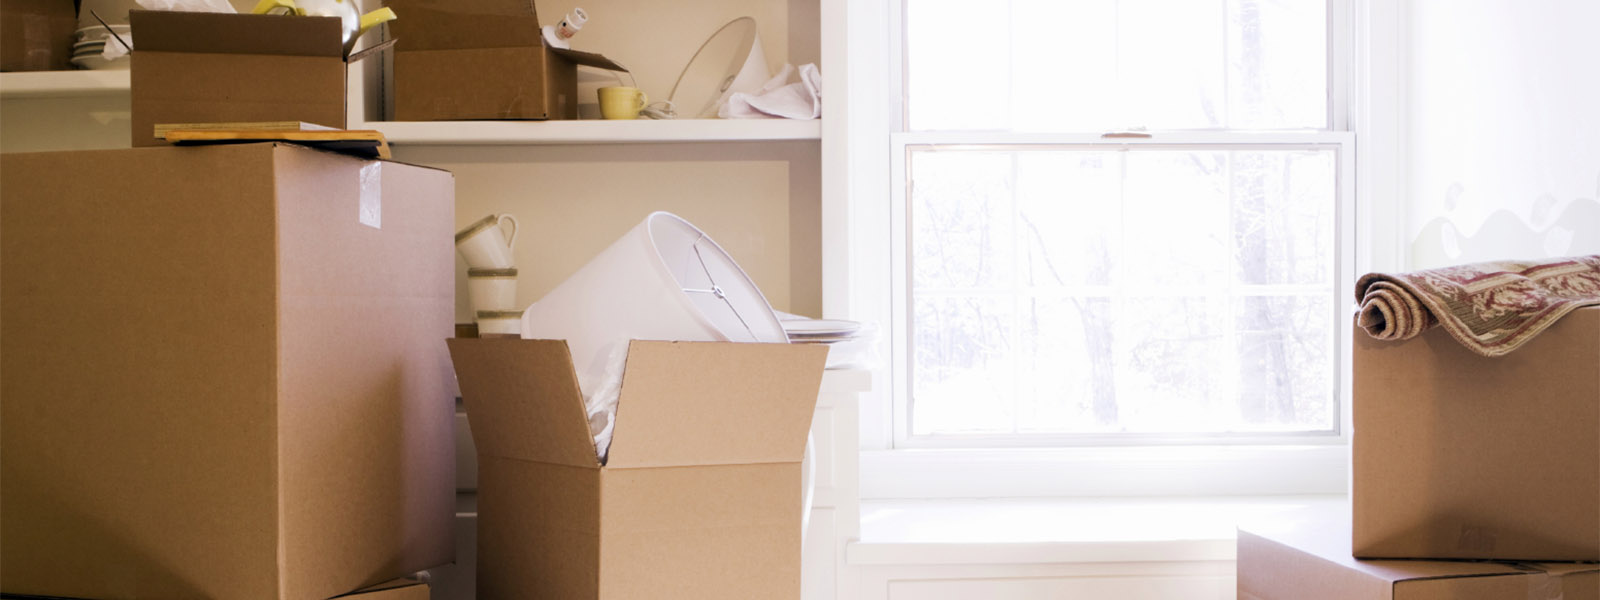 The Ultimate Household Essentials Checklist for When You Move In